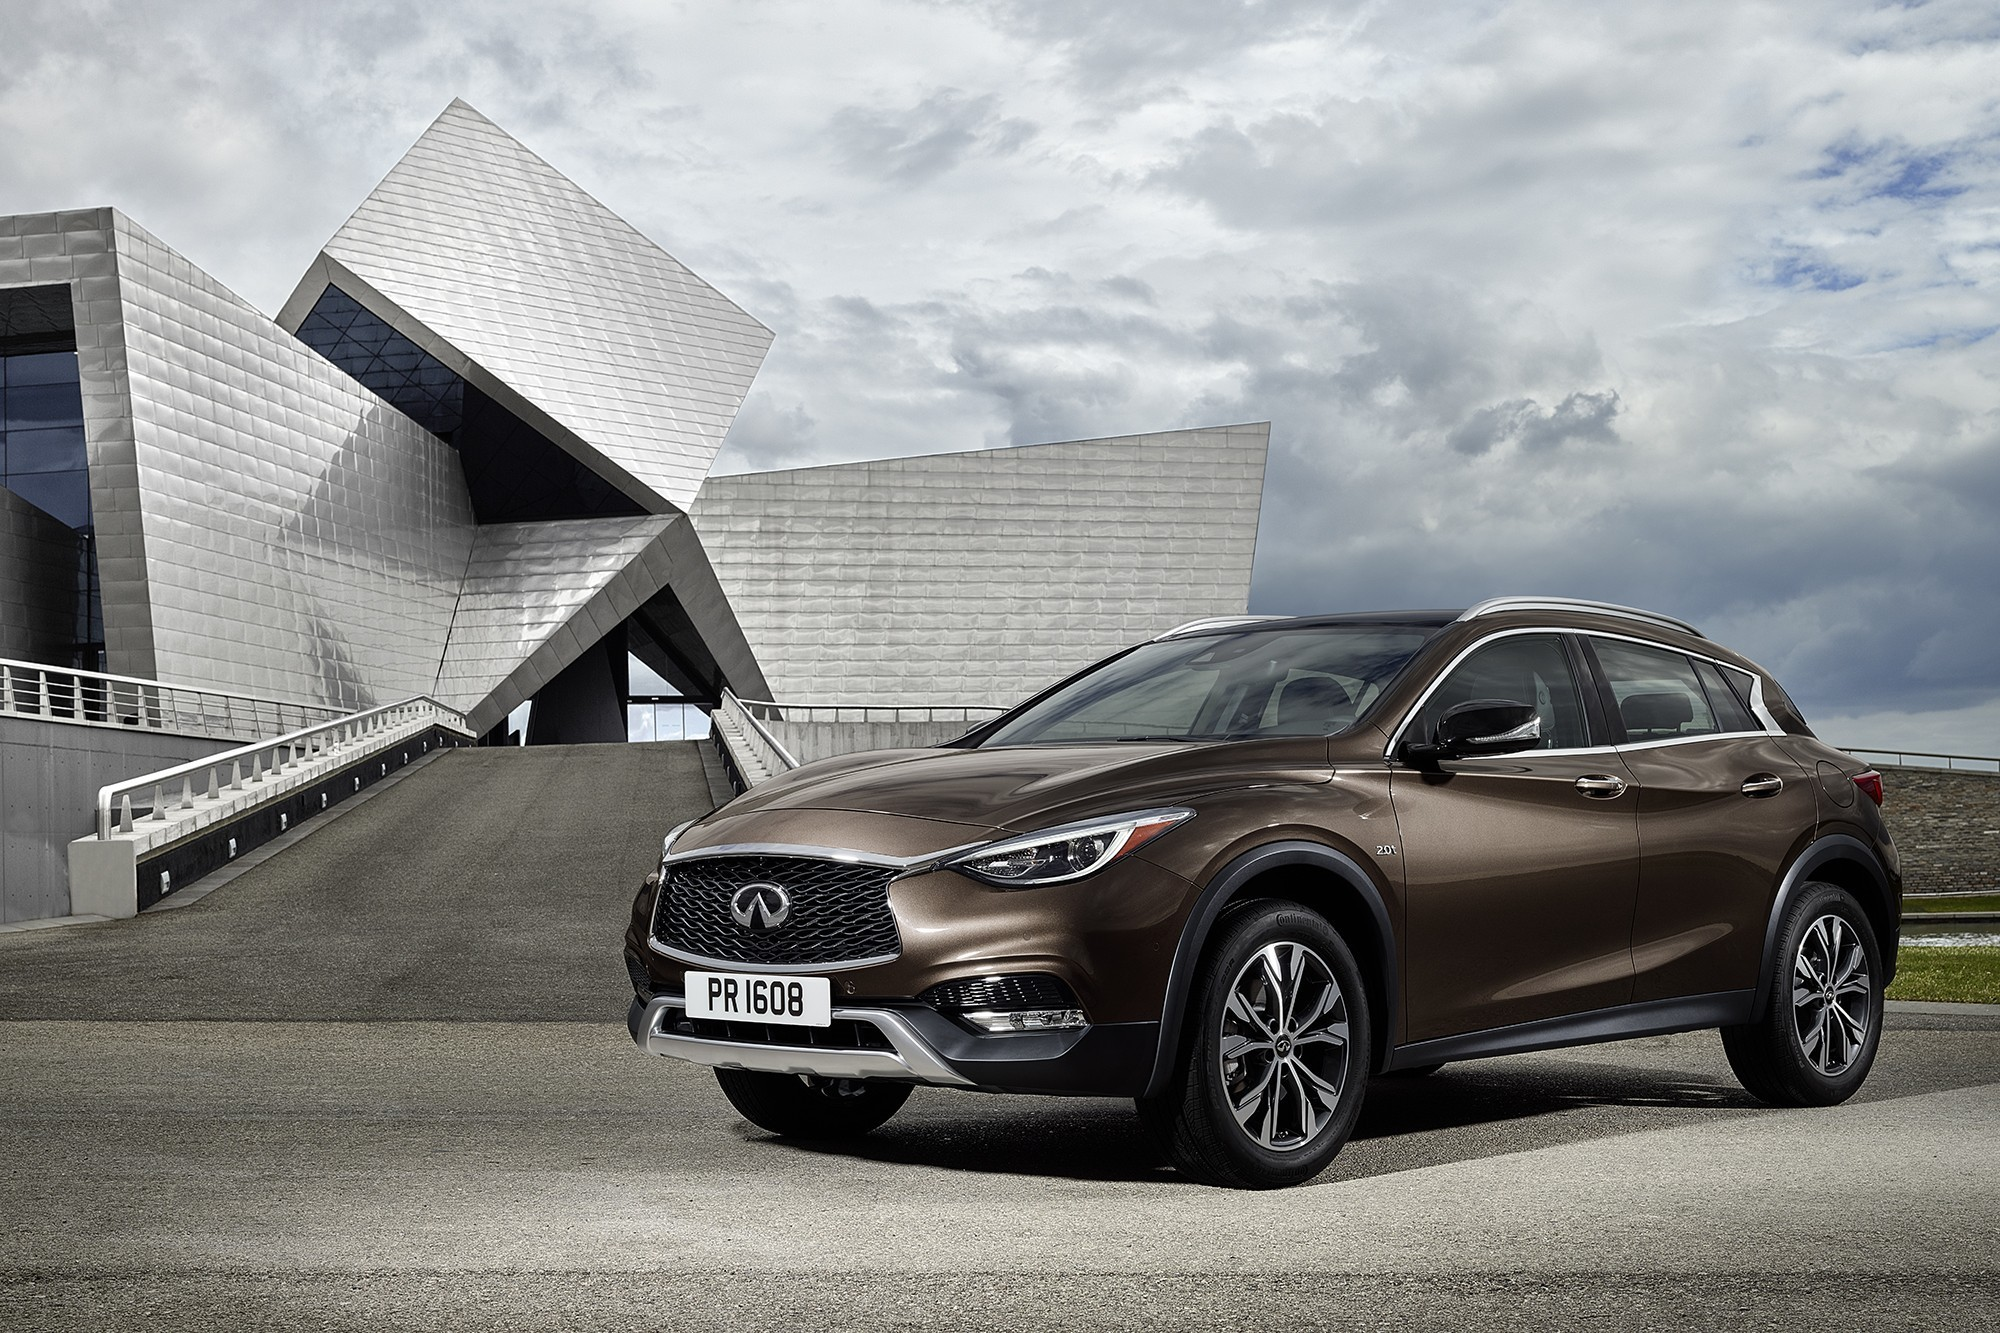 The infiniti qx30 premium active crossover is making its simultaneous global debut at the 2015 los angeles and guangzhou international motor shows